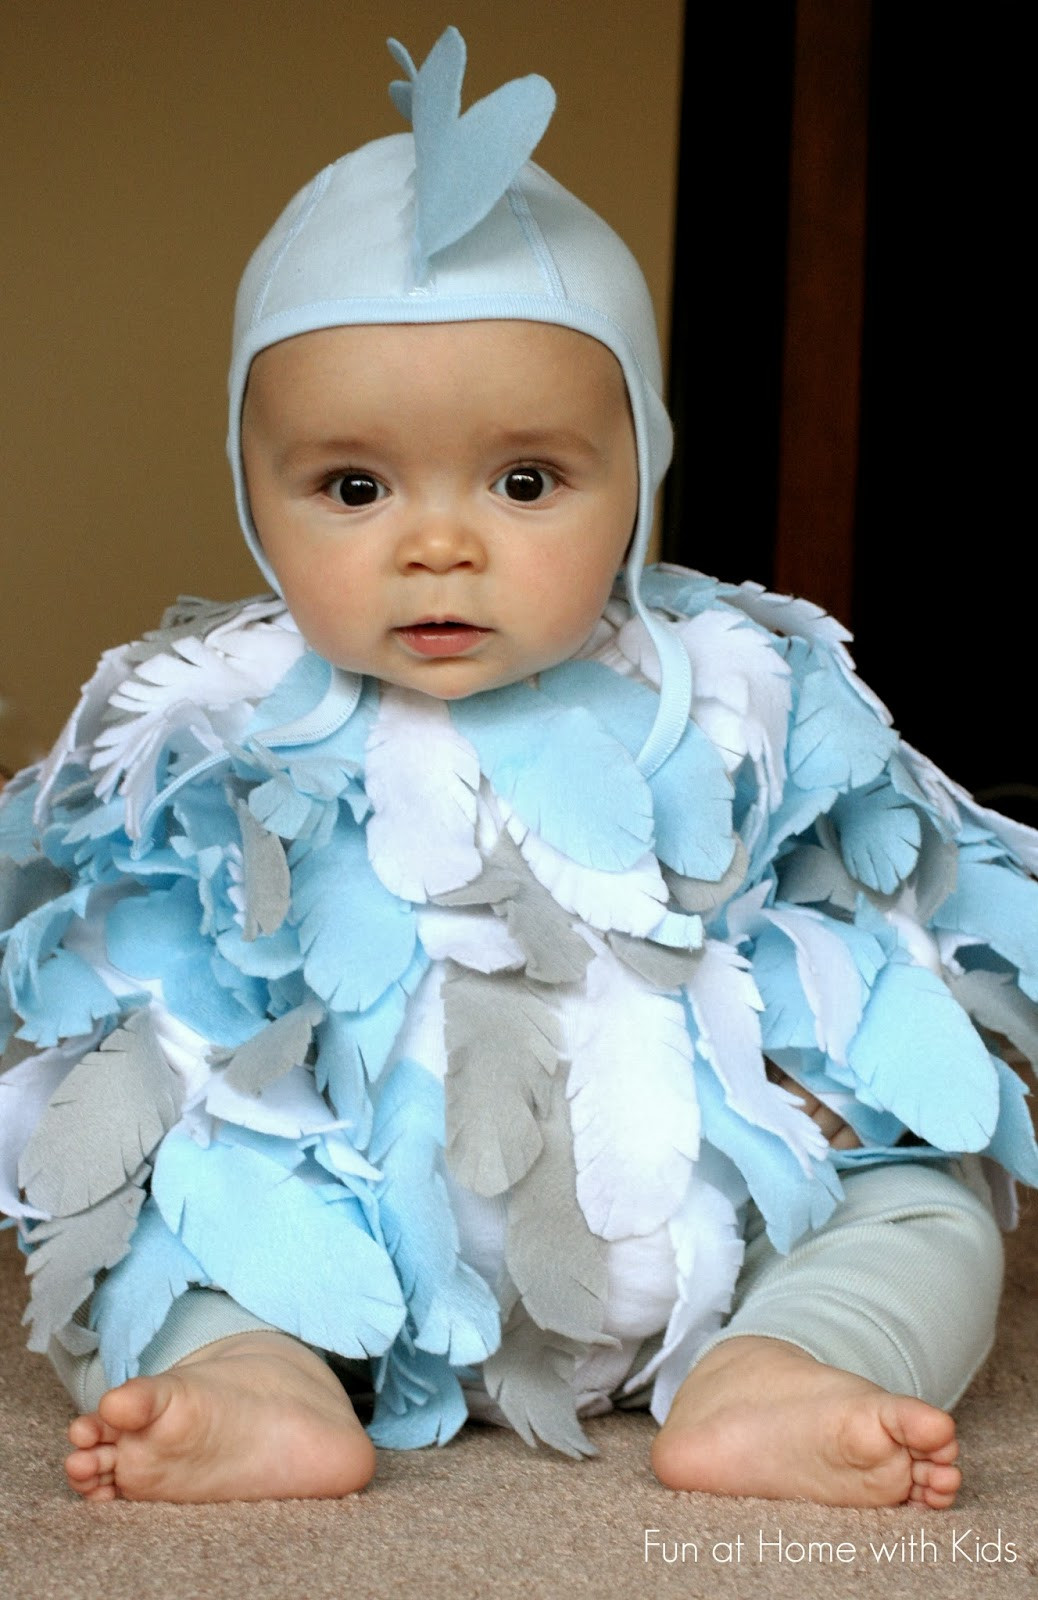 Best ideas about DIY Baby Costume . Save or Pin DIY No Sew Baby Chicken Halloween Costume Now.